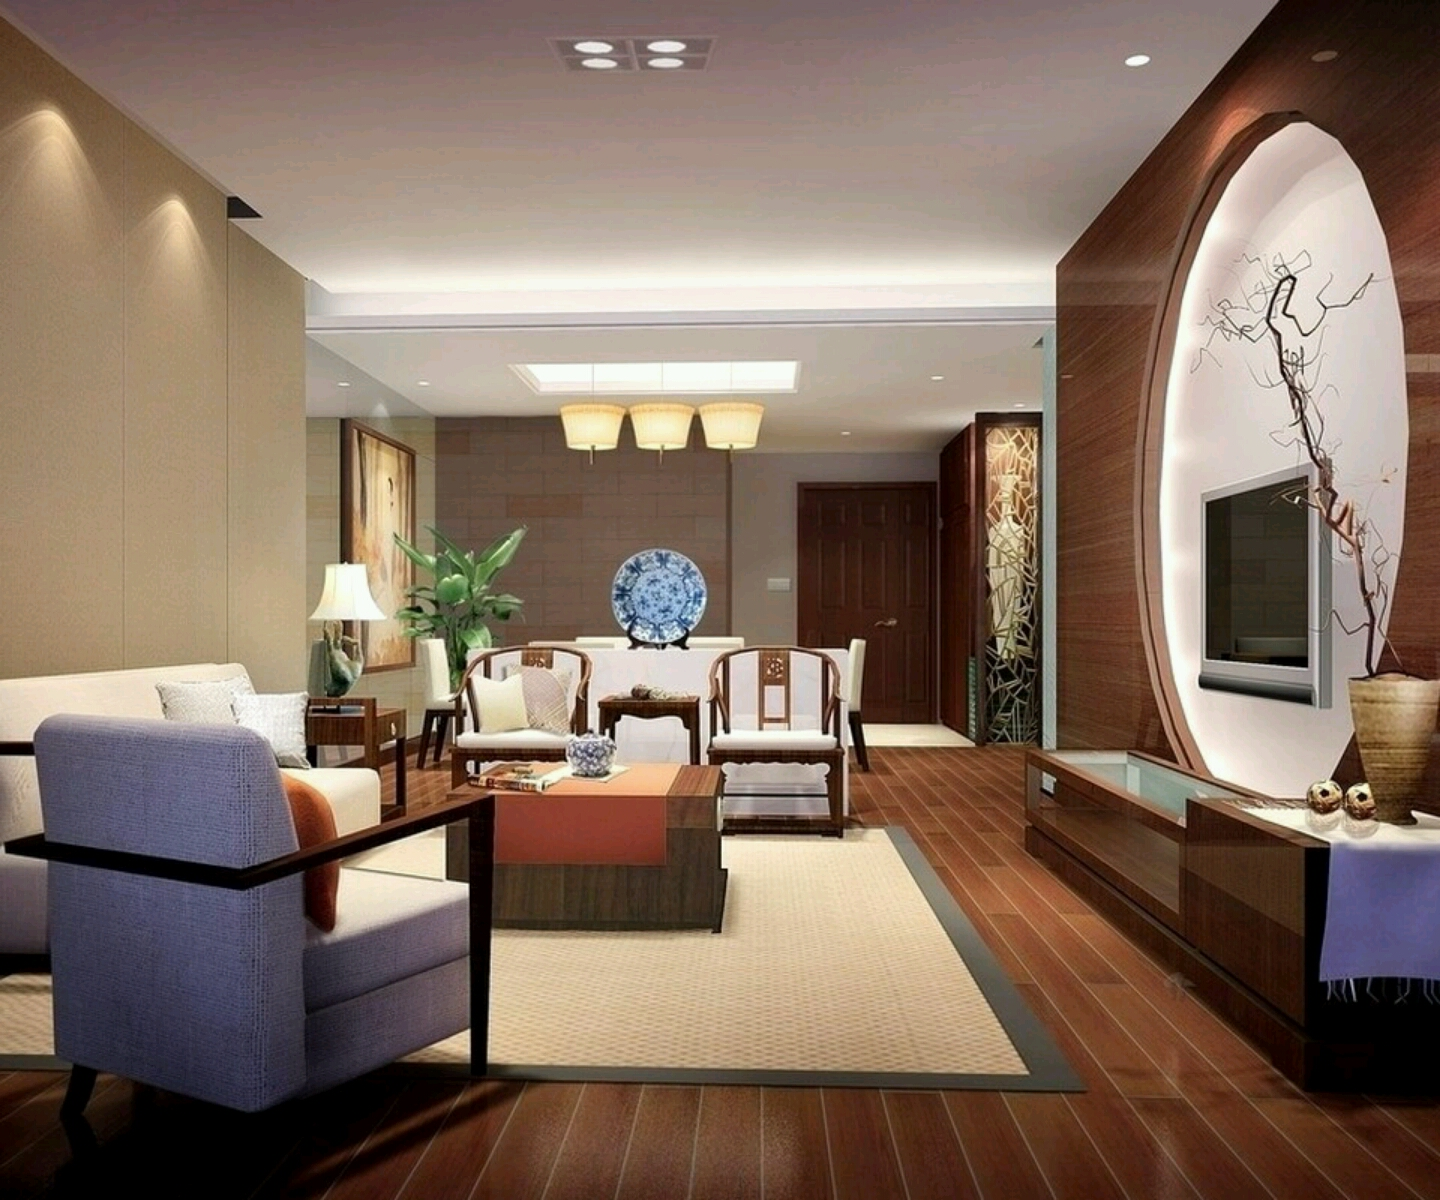 Luxury homes interior decoration living room designs ideas for House room design ideas